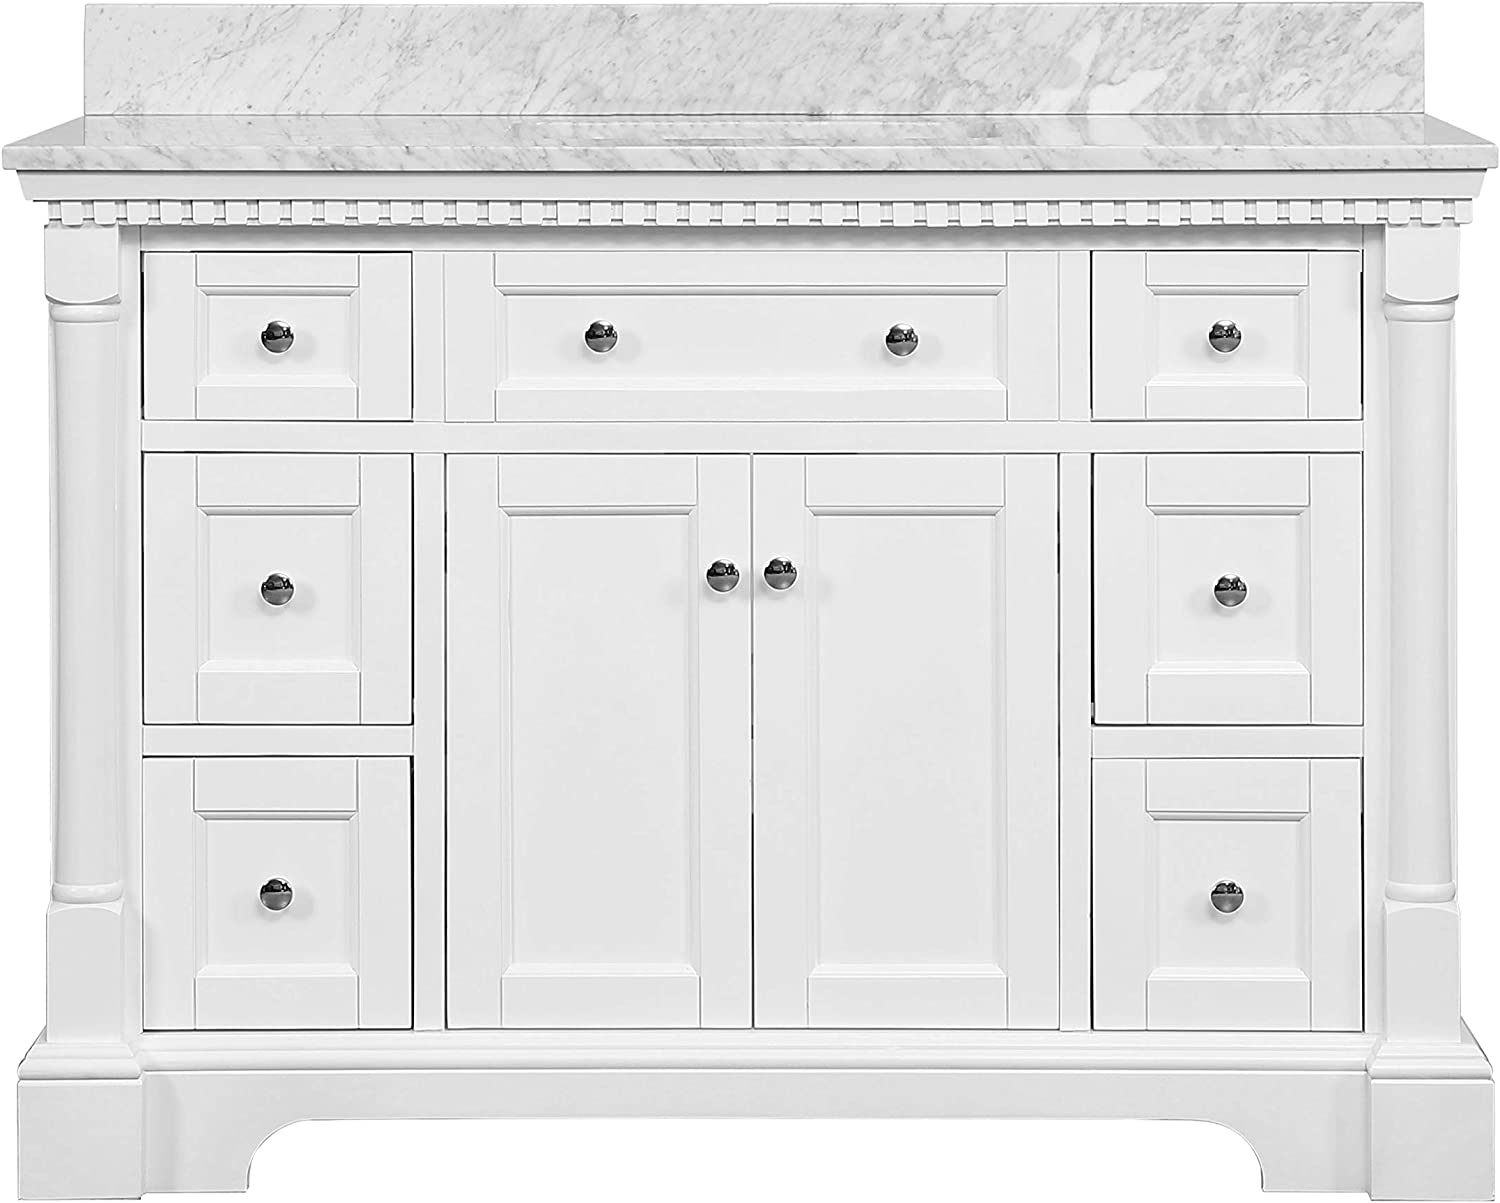 Sydney 48-inch Bathroom Vanity Carrara//Chocolate Includes Chocolate Cabinet with Authentic Italian Carrara Marble Countertop and White Ceramic Sink